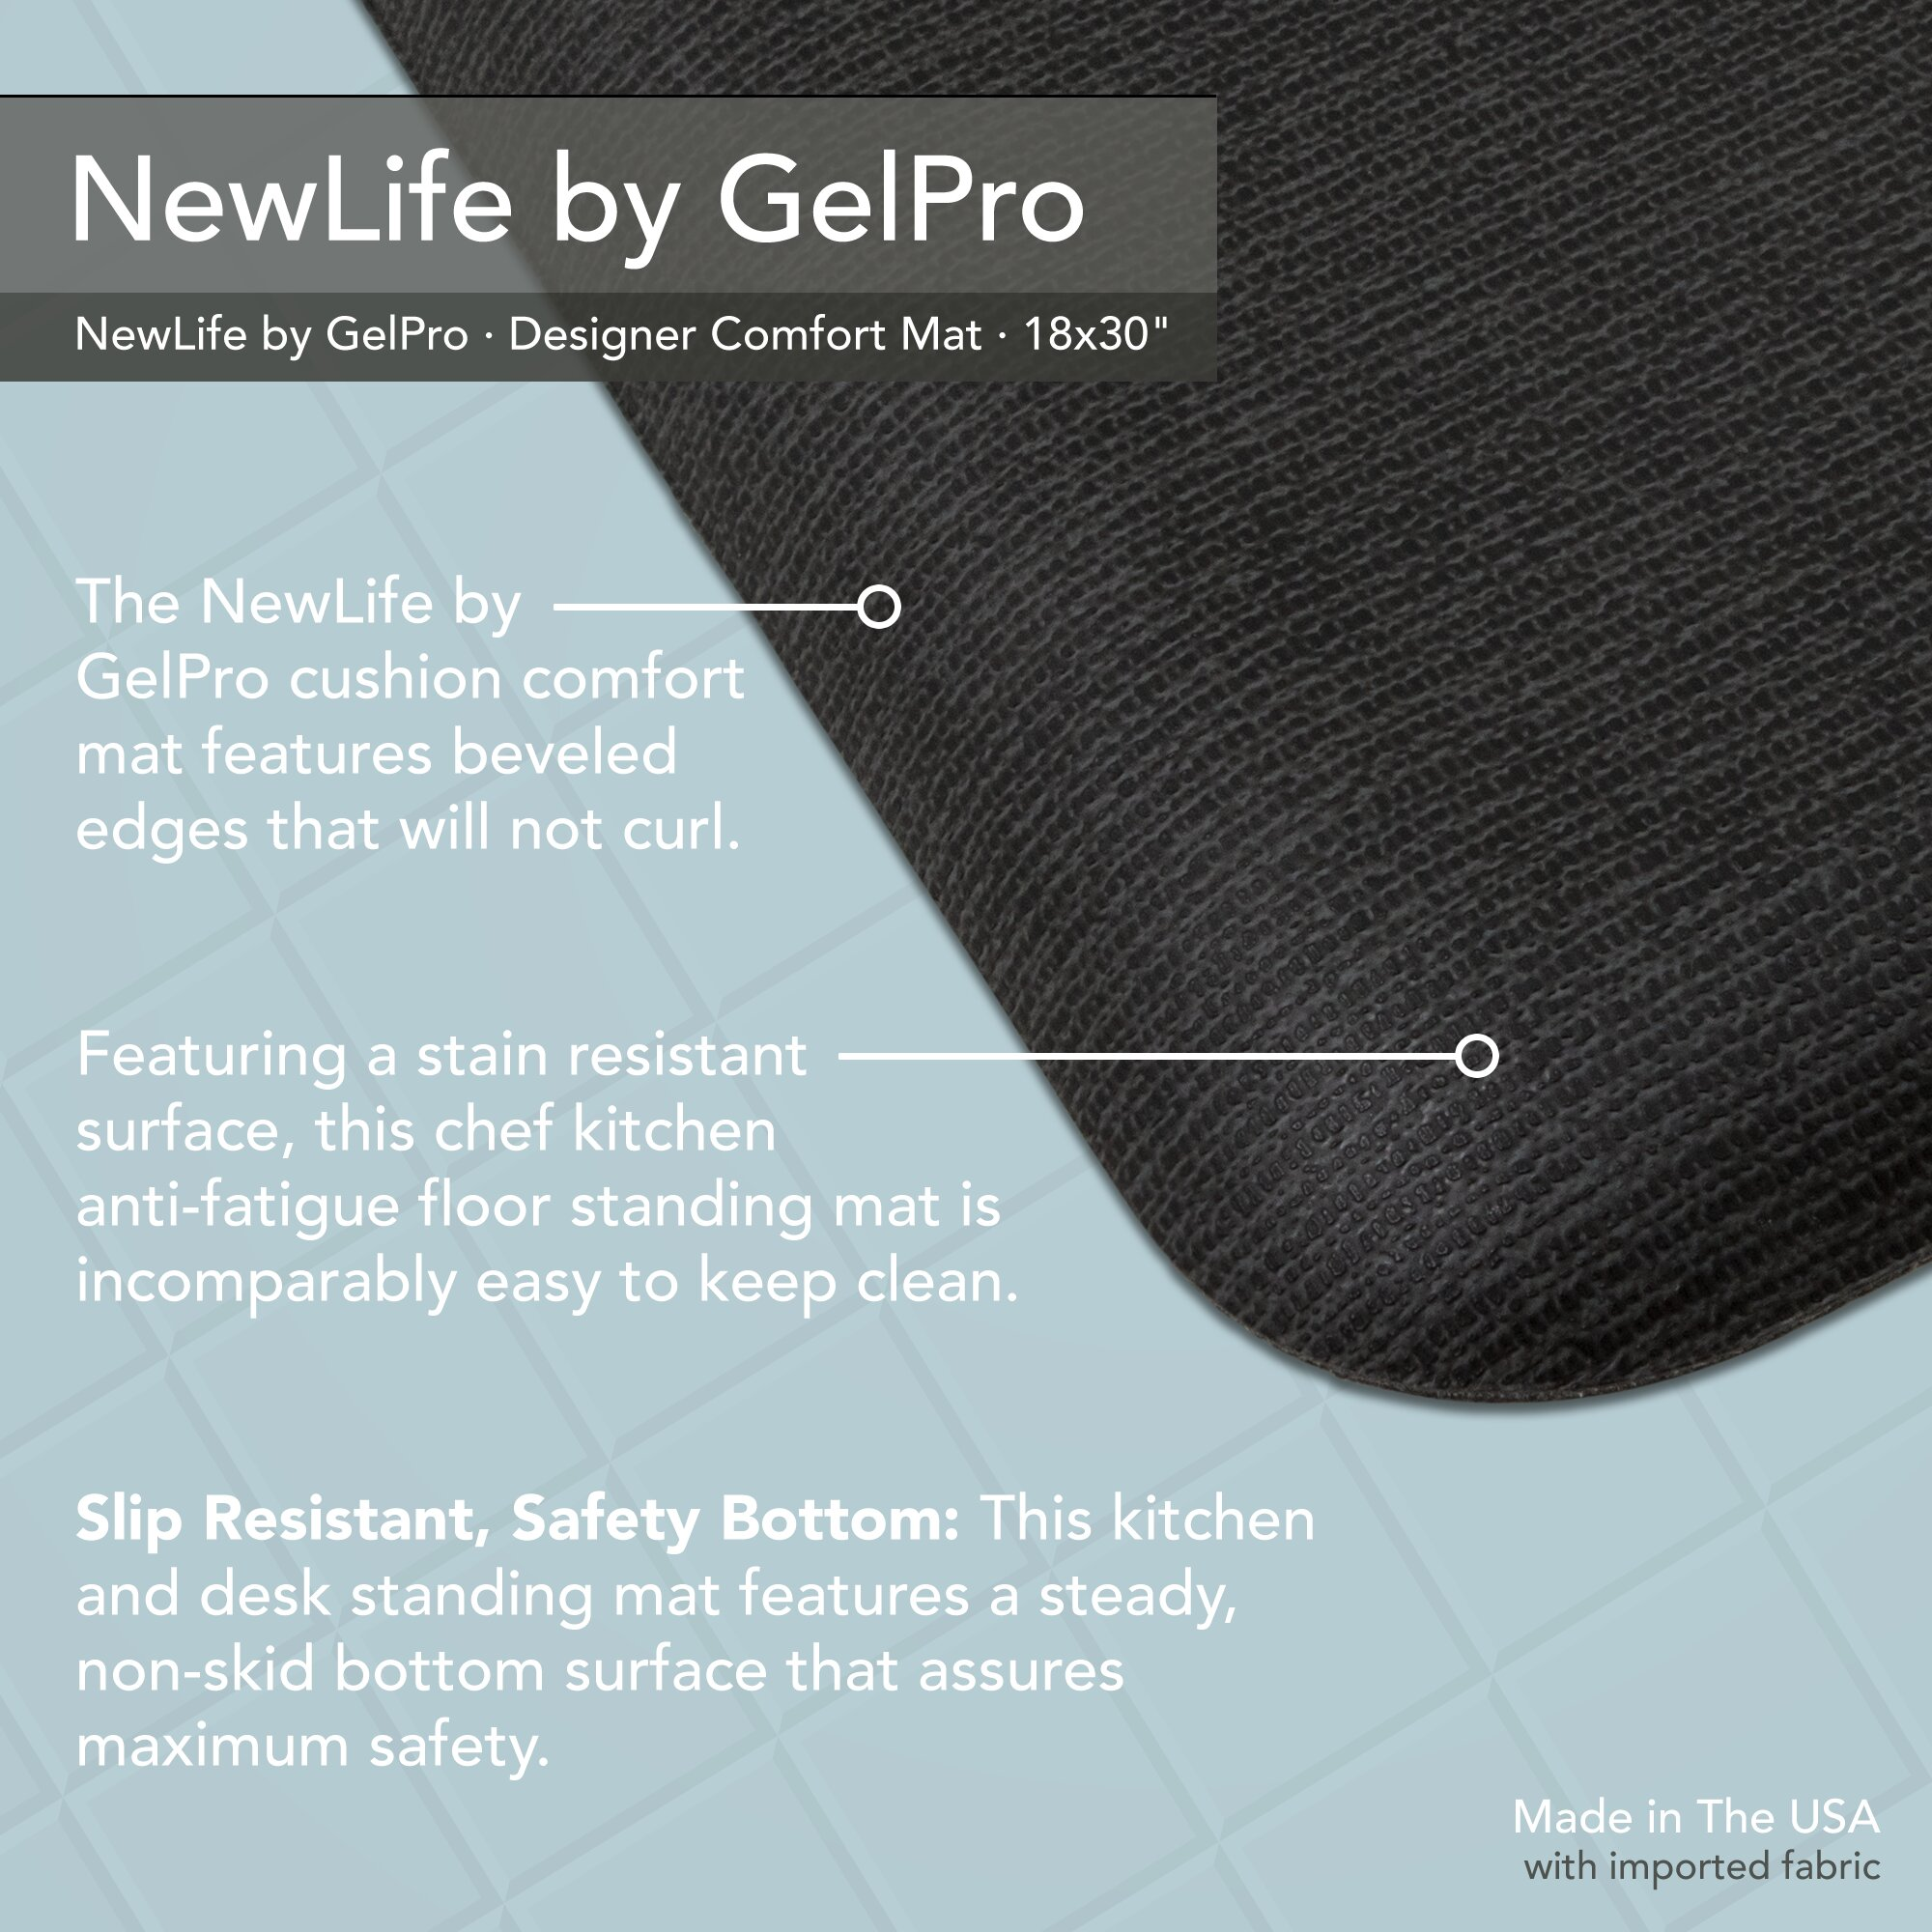 GelPro Grasscloth Designer Comfort Kitchen Mat U0026 Reviews | Wayfair